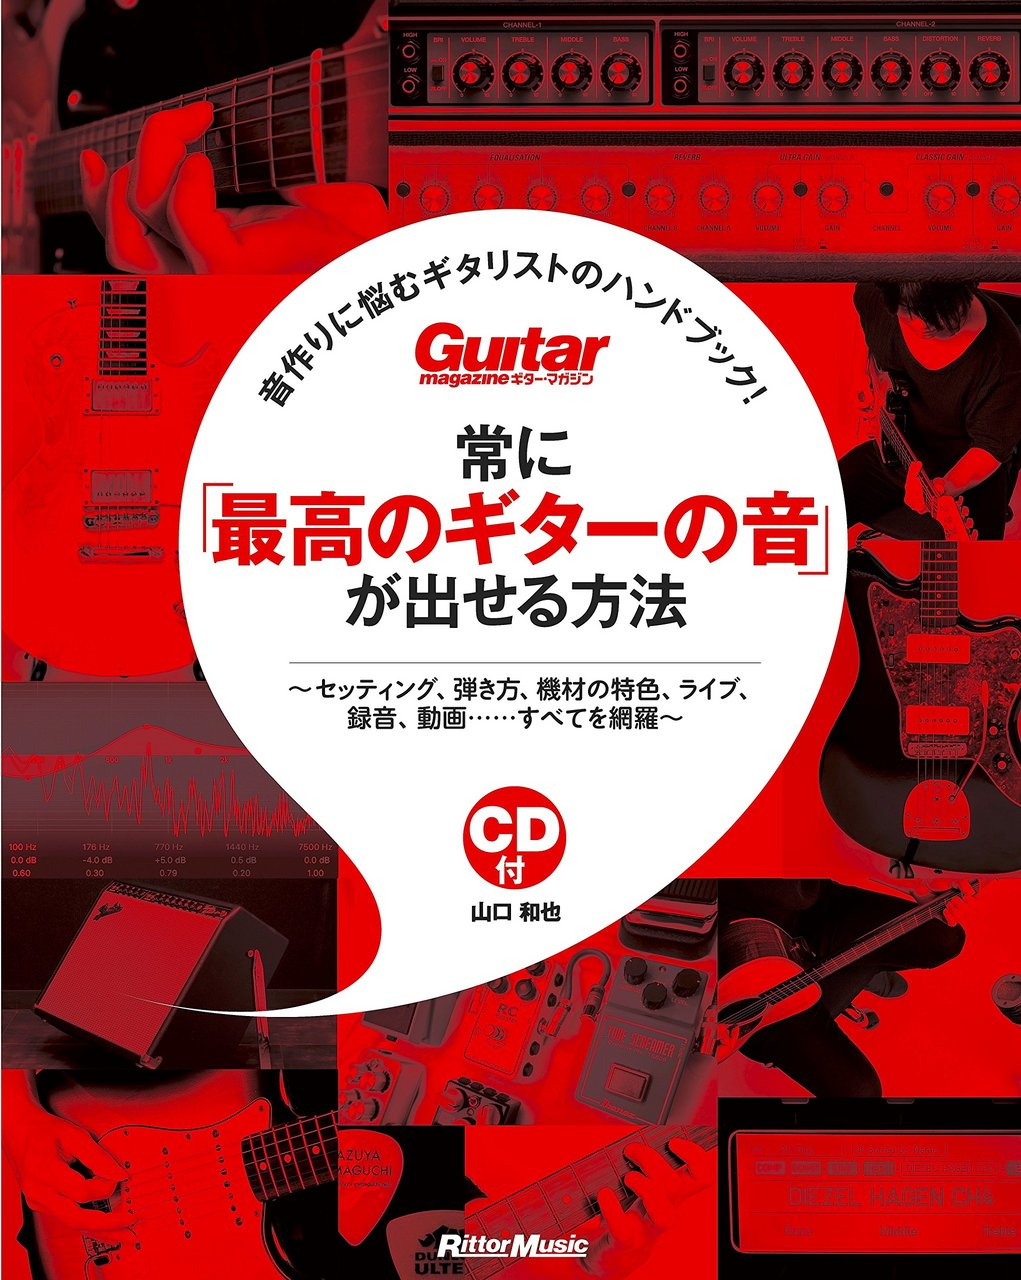 "Handbook of guitarist suffering from making Rittor music sound! How to always ""sound of the best guitar"" is put out"